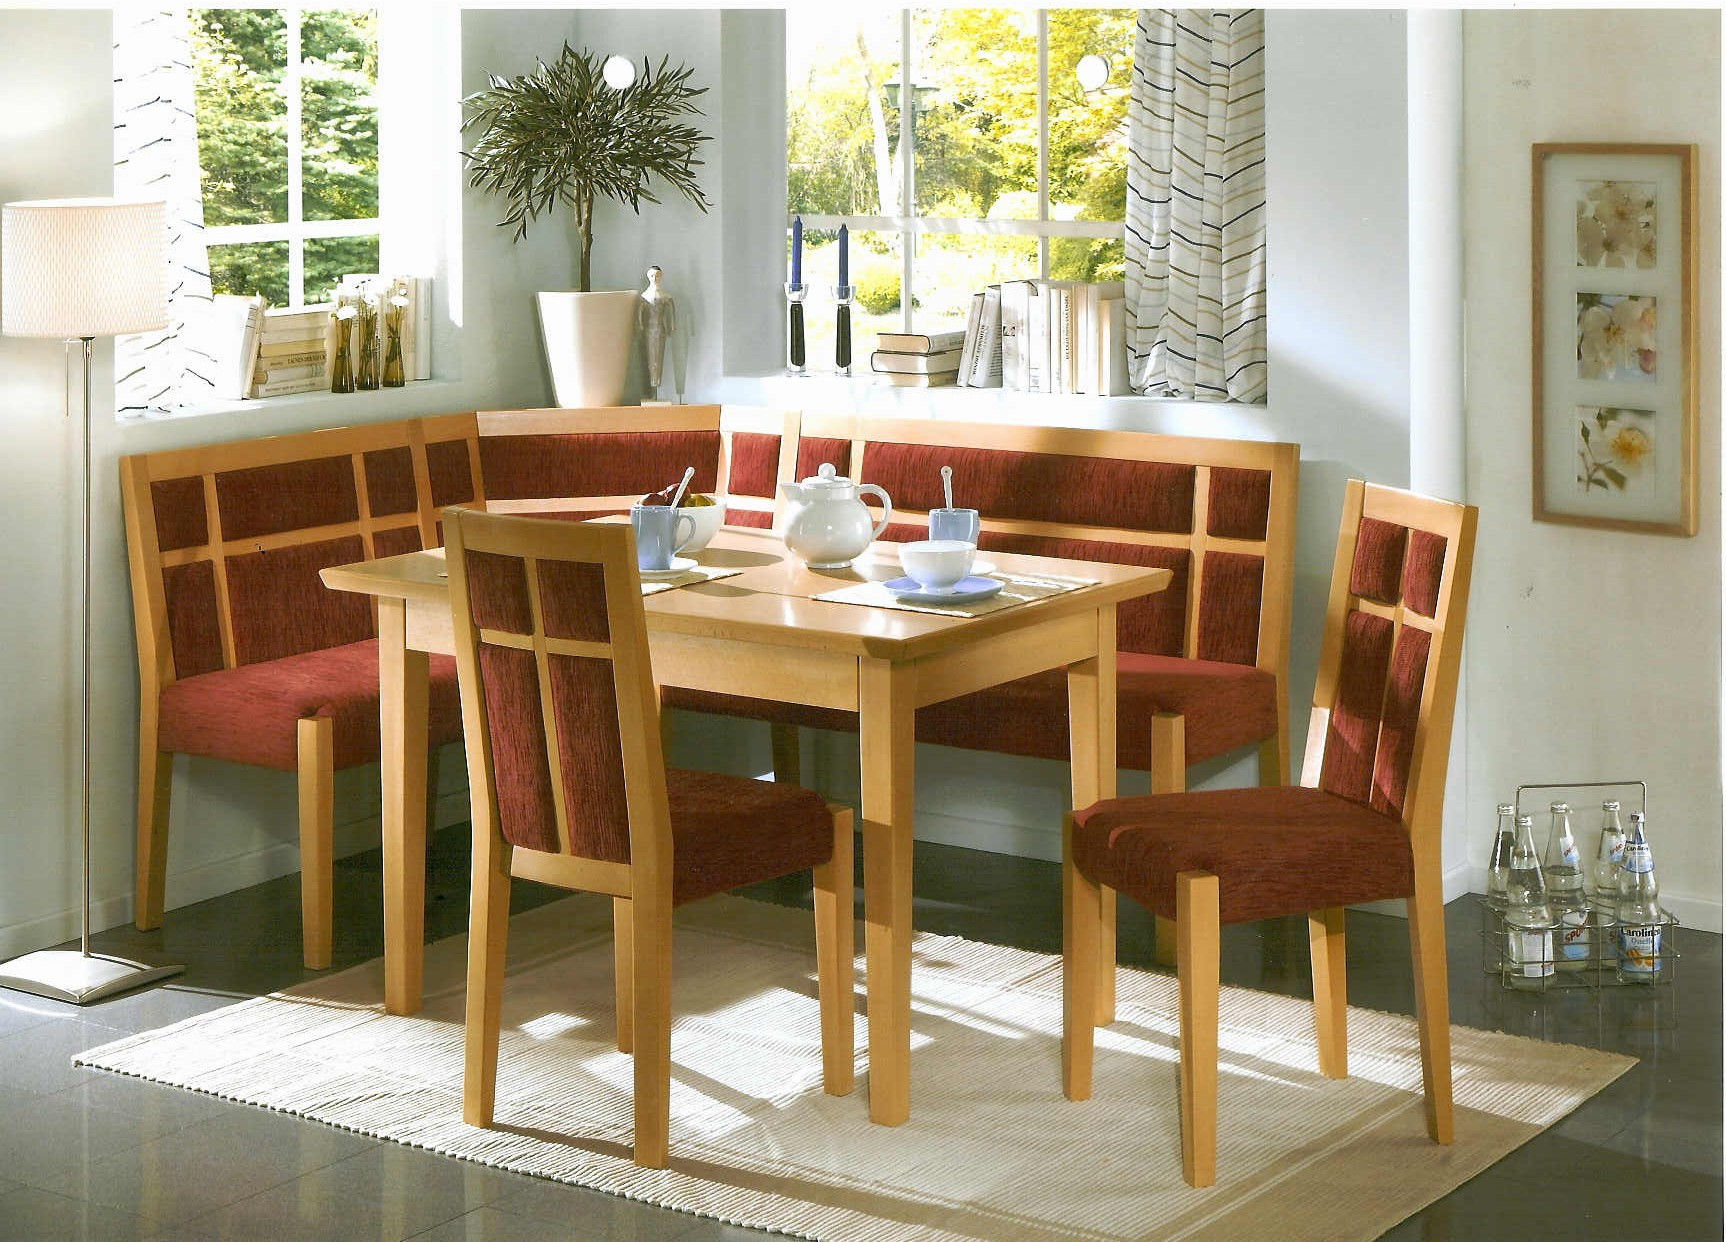 Best ideas about Booth Dining Table . Save or Pin Dining Table Booth Type Dining Tables Now.